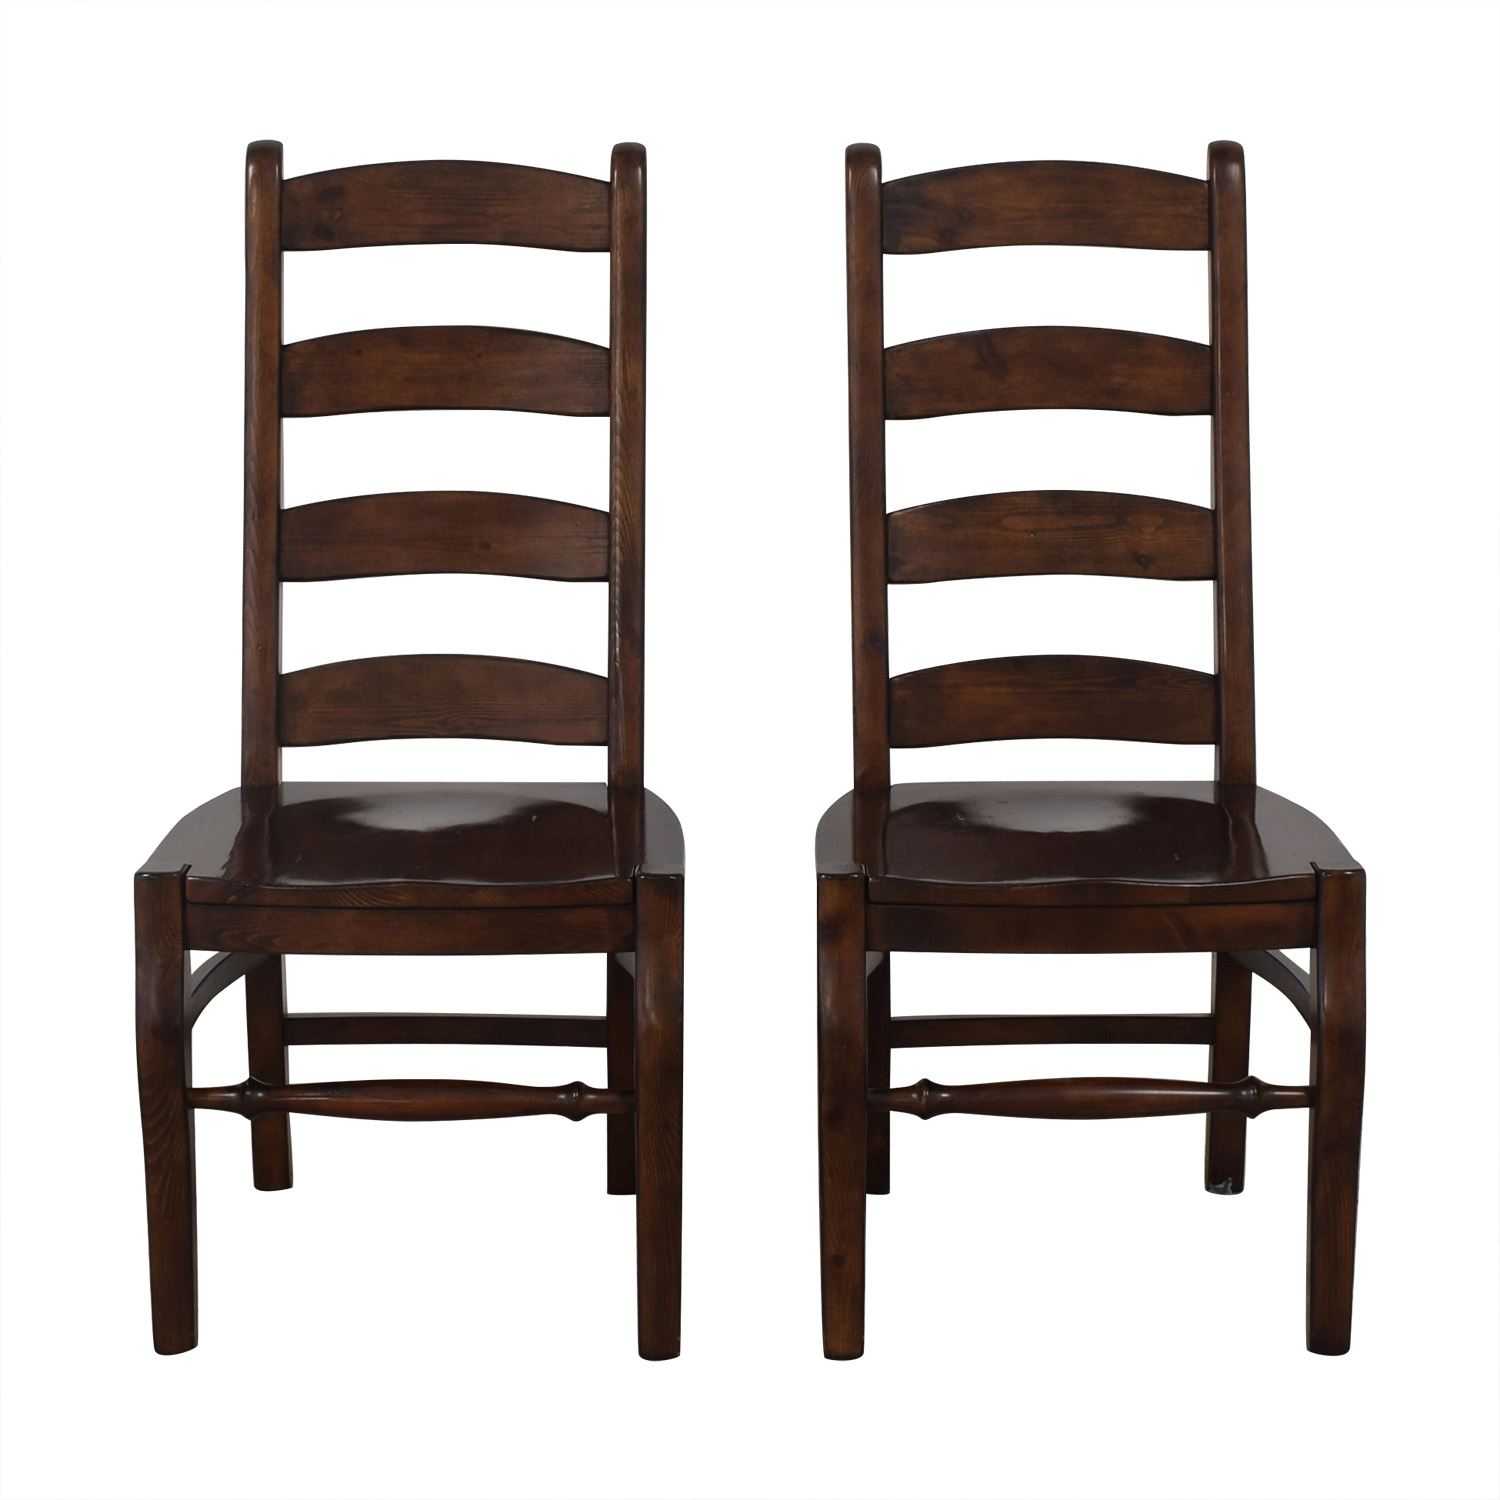 Pottery Barn Wynn Ladderback Dining Chairs sale